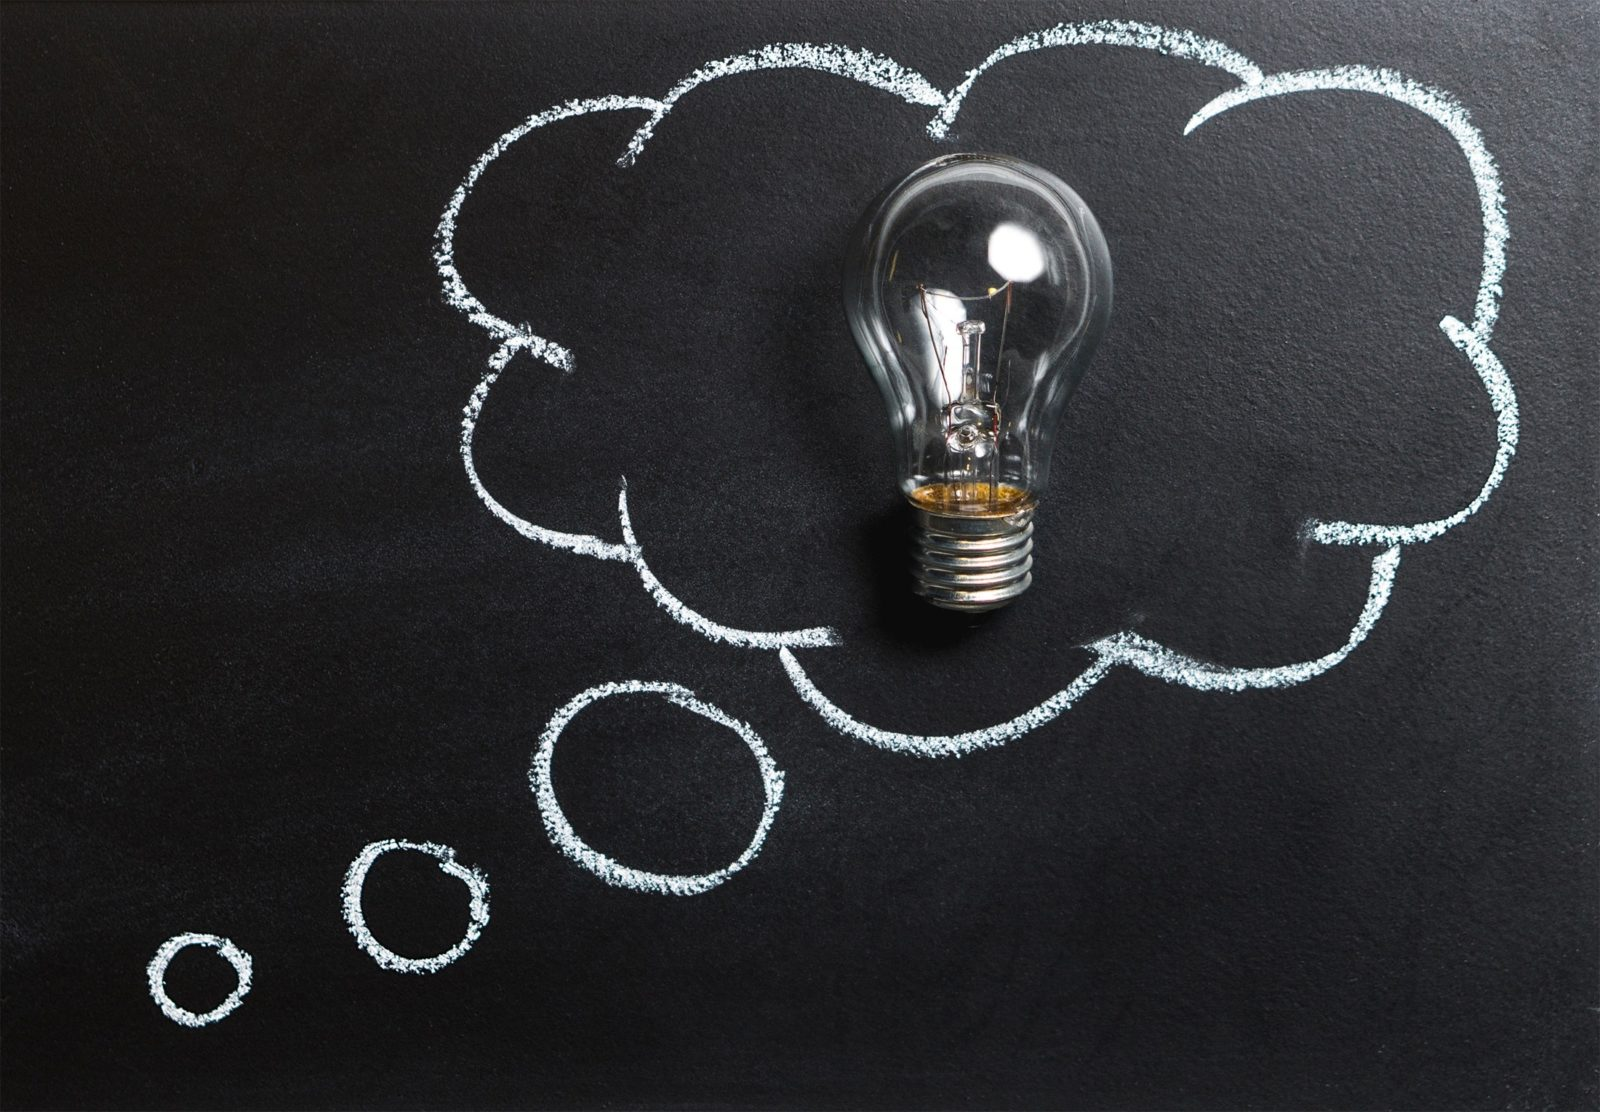 Lightbulb on Blackboard with Thought Bubble